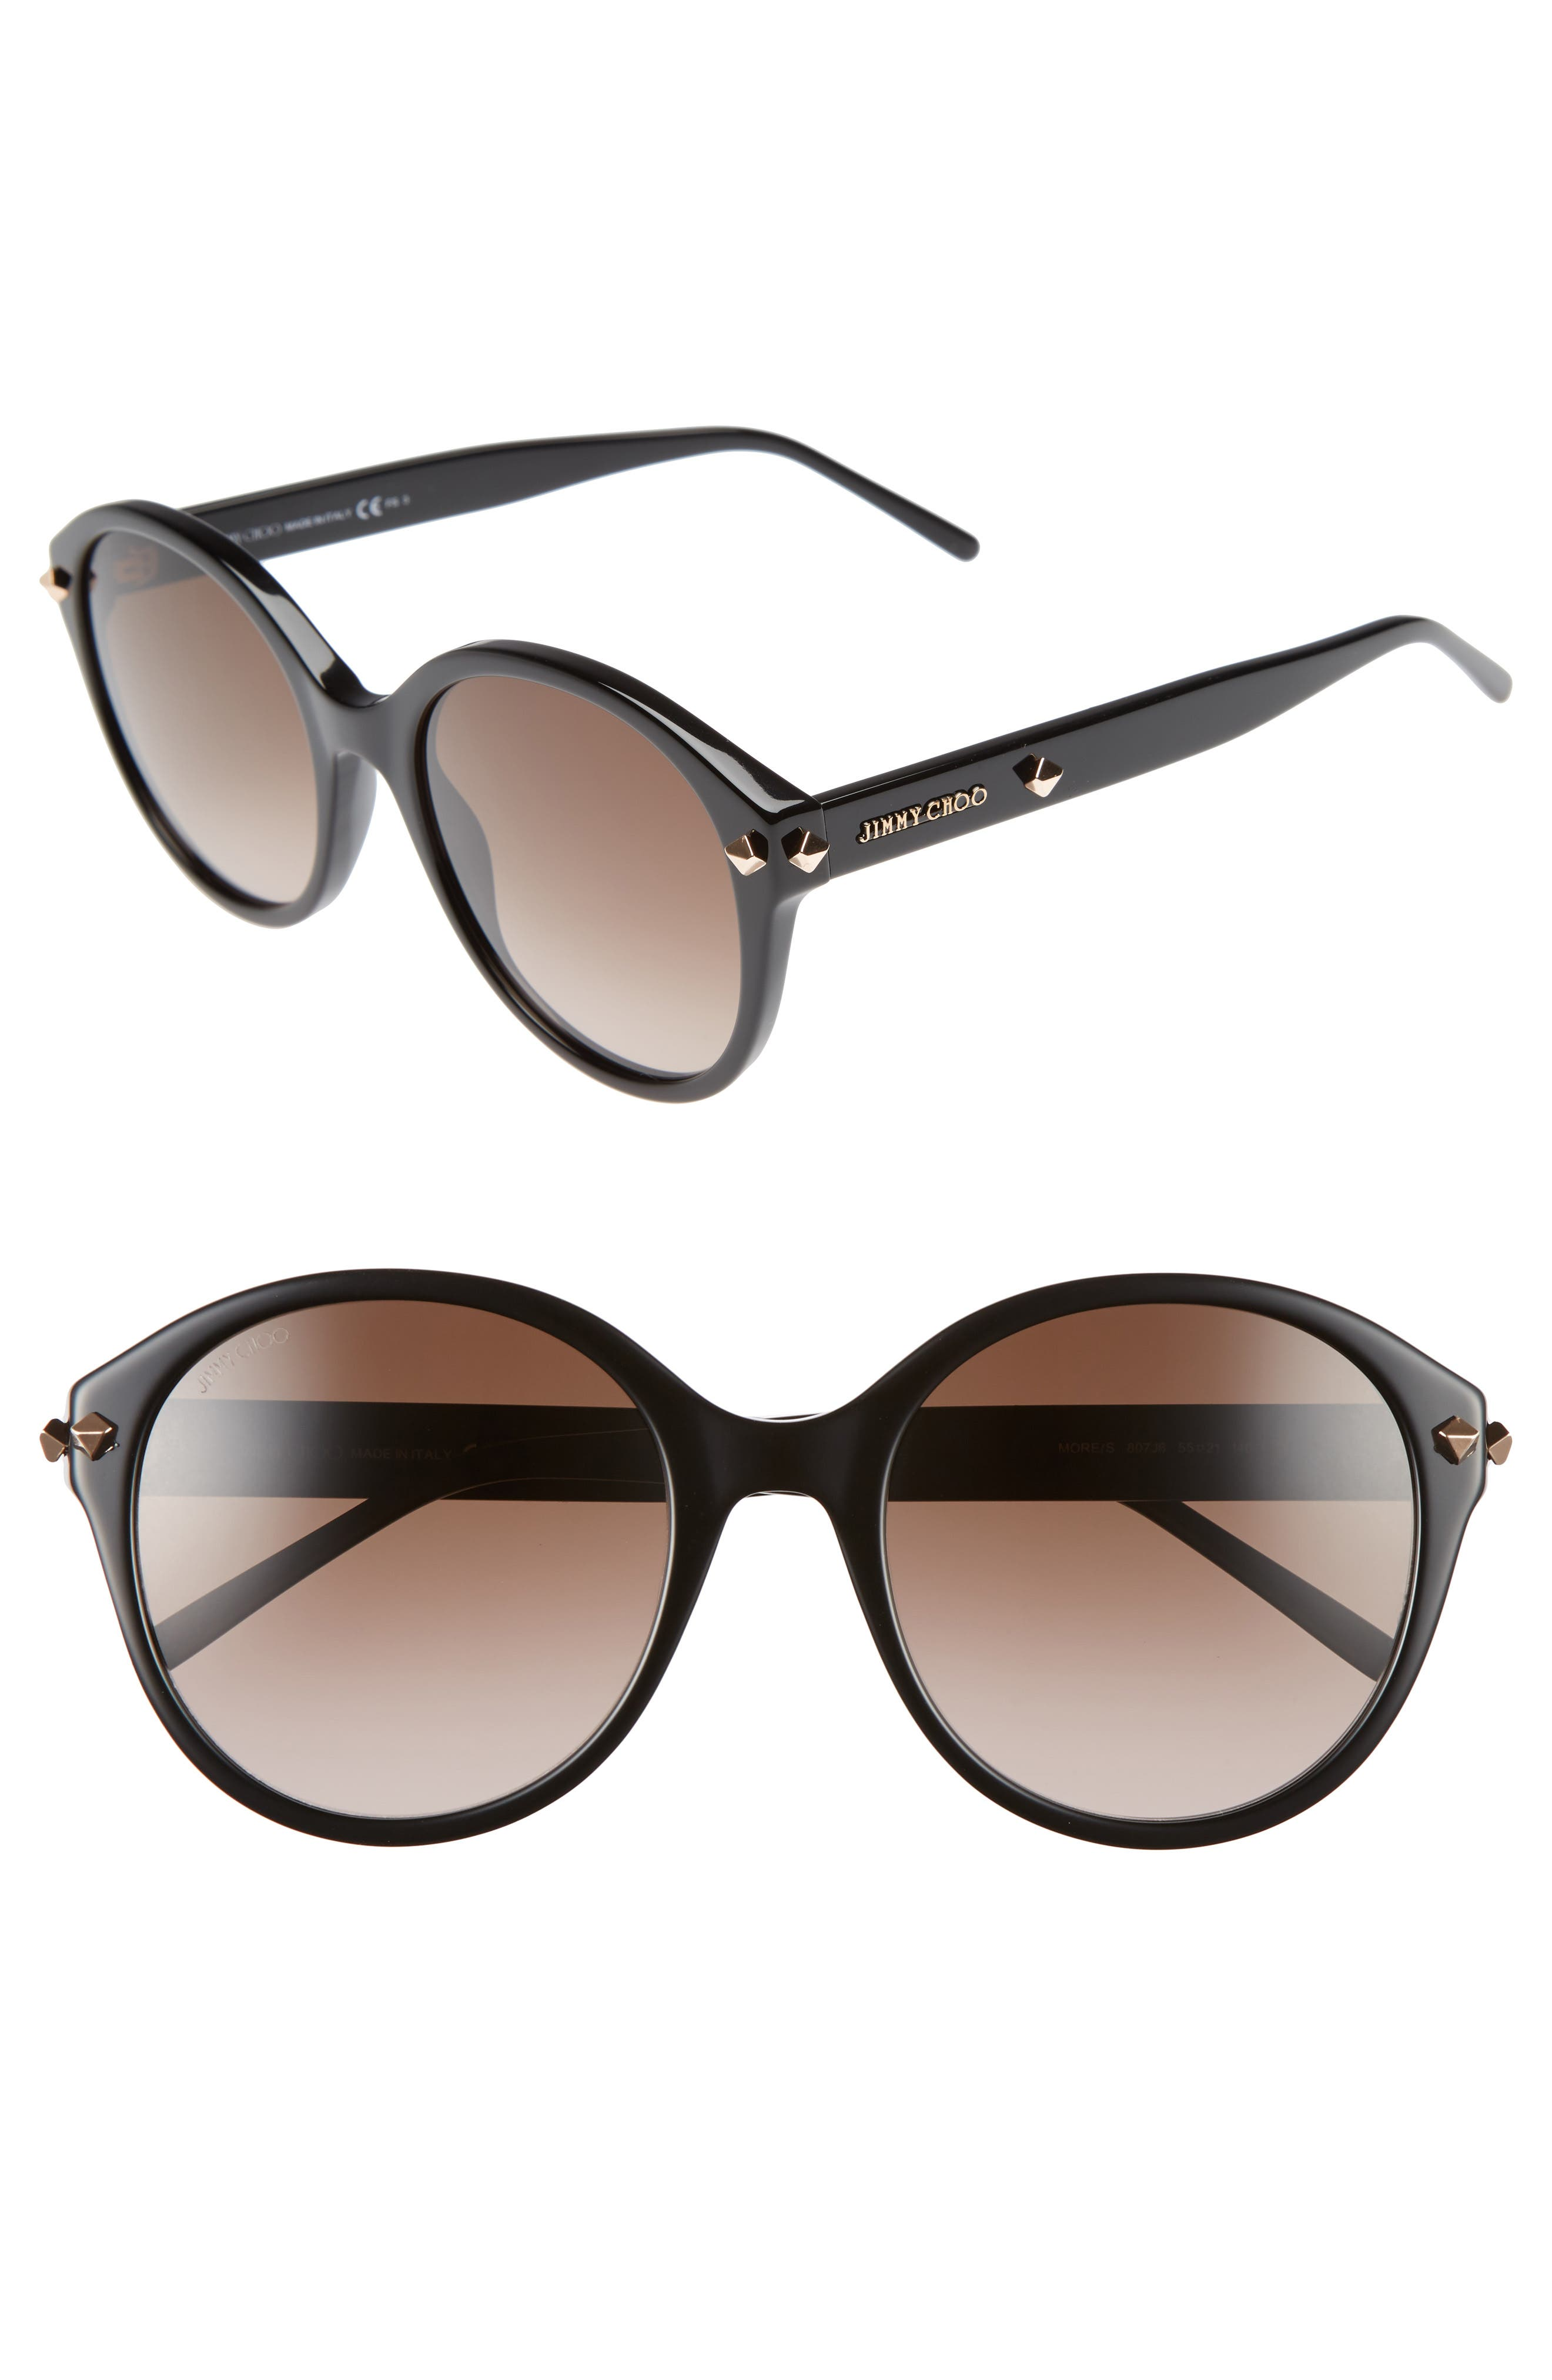 55mm Oversized Sunglasses,                         Main,                         color,